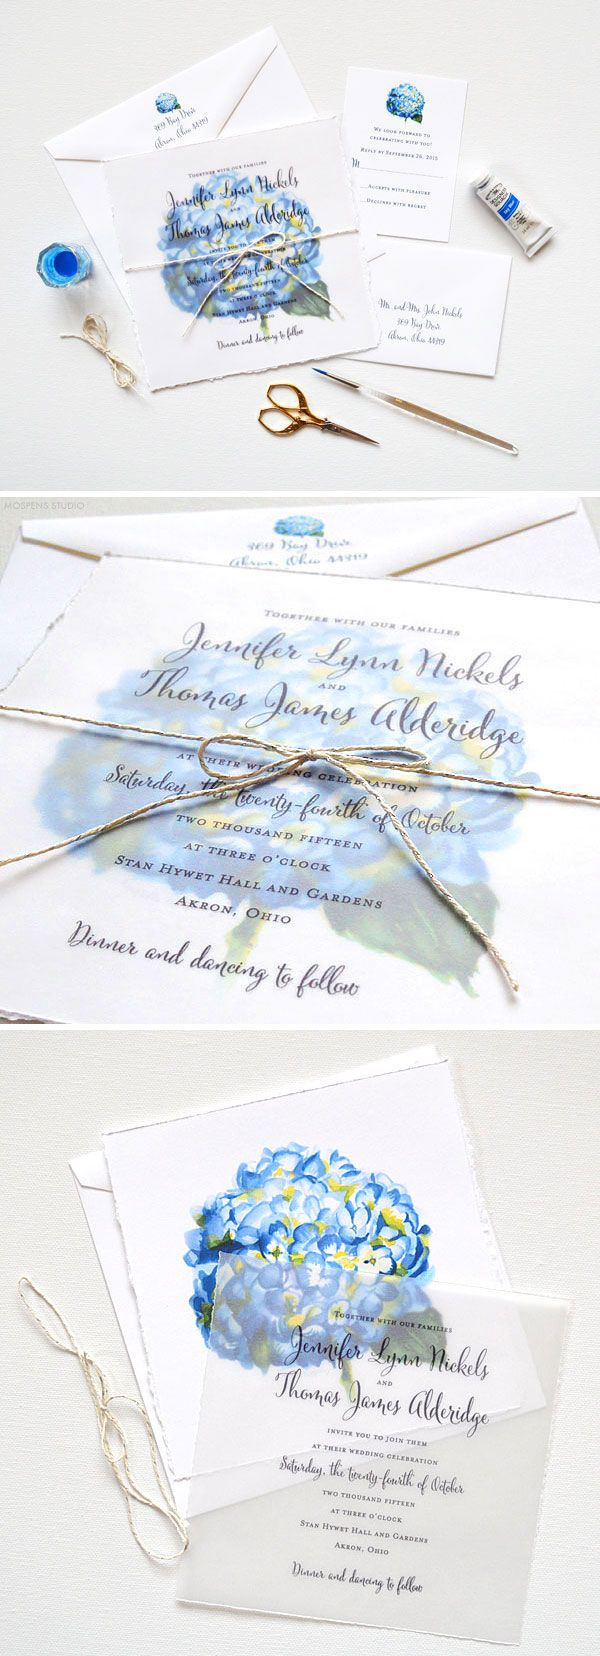 January 2015 Archives - Custom Save the Dates, Unique Wedding ...